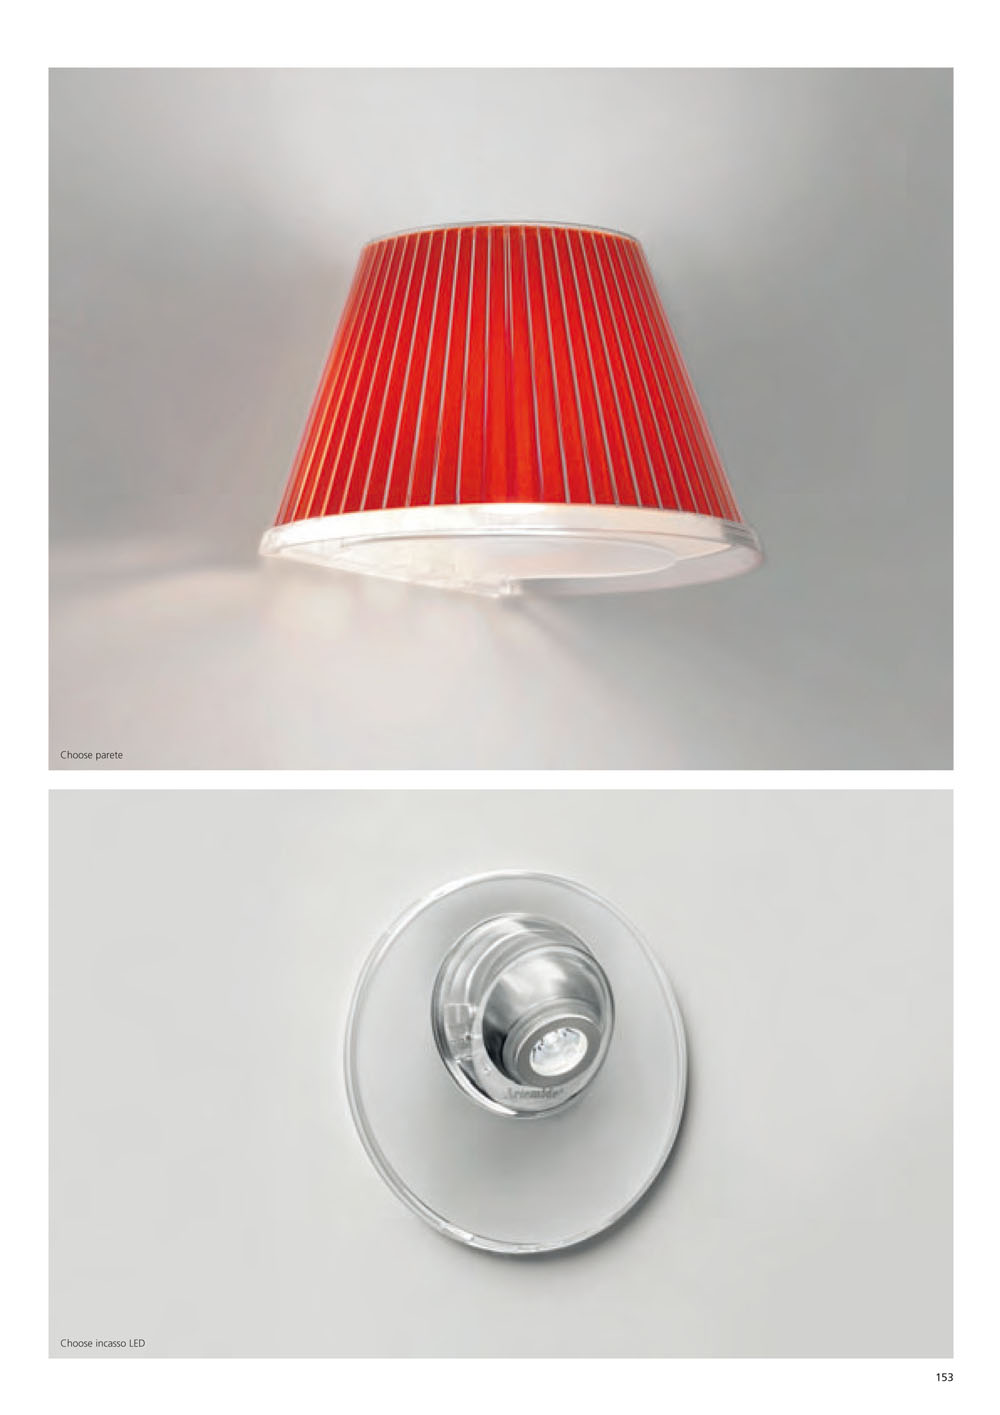 Choose Aplique + LED Estructura gris Aluminio, Difusor Rojo